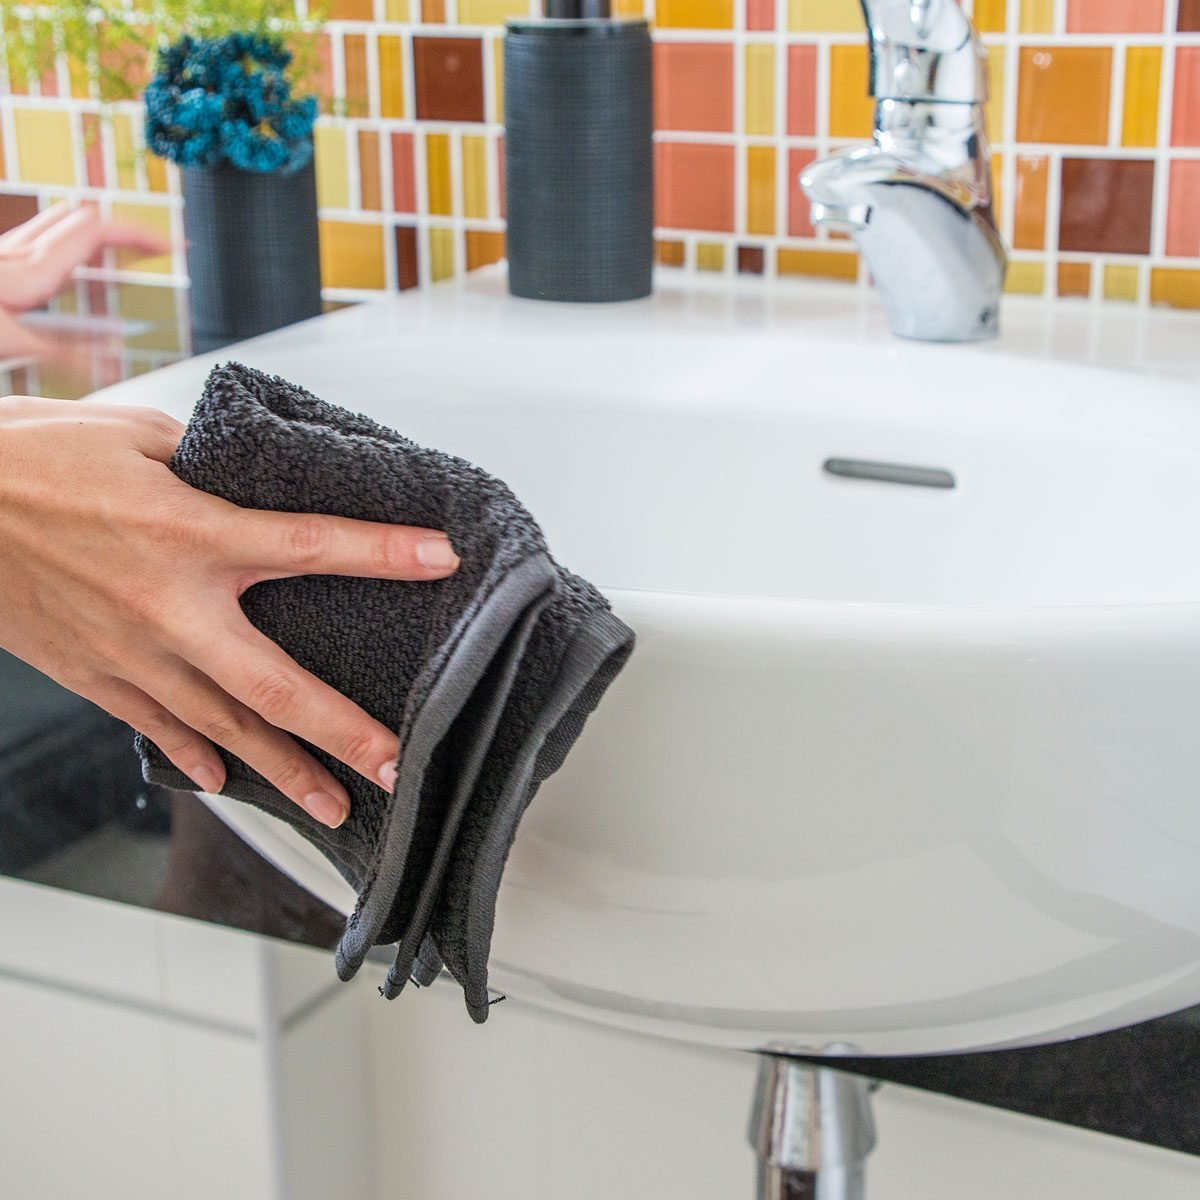 How To Clean With Bleach In A Bathroom Family Handyman